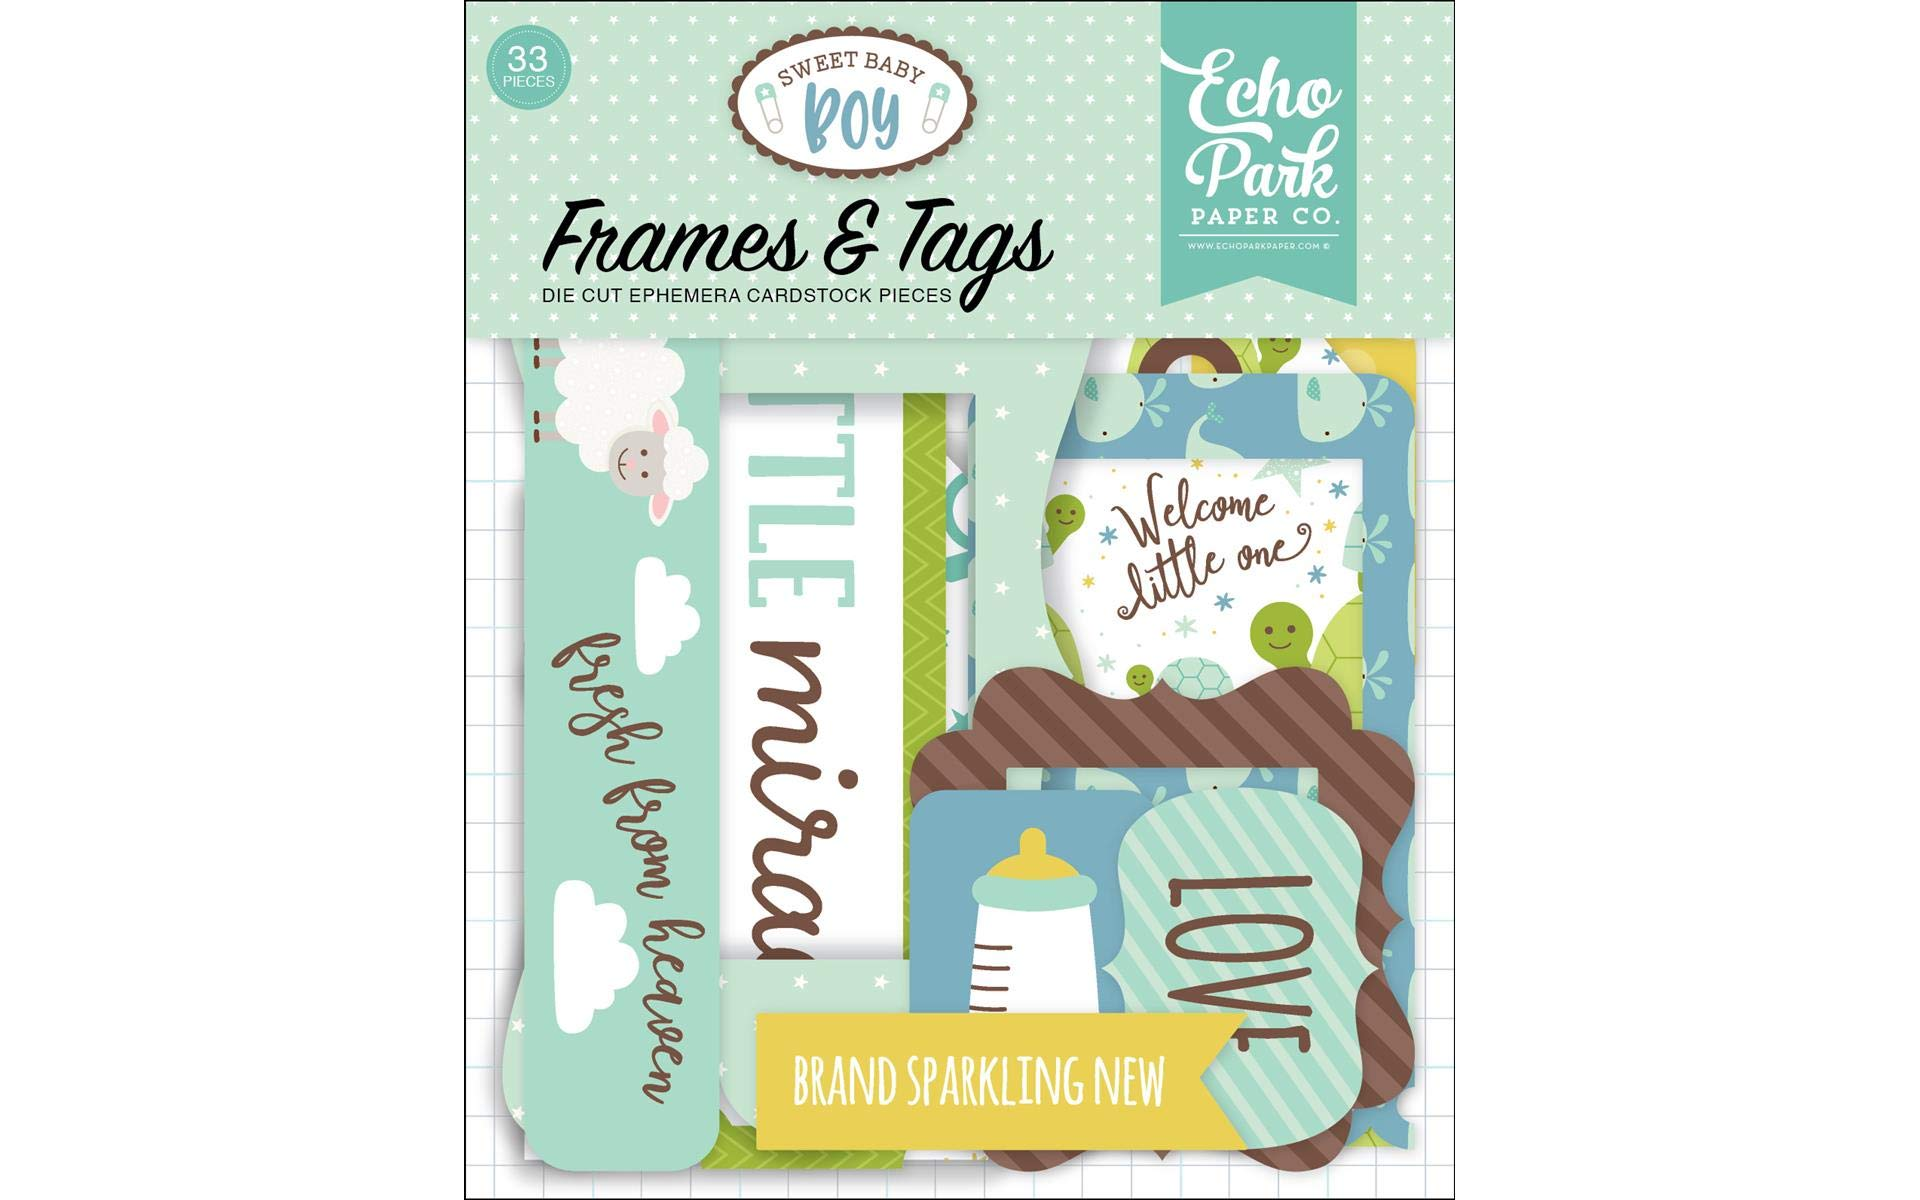 Echo Park Paper Company Sweet Baby Boy Frames & Tags